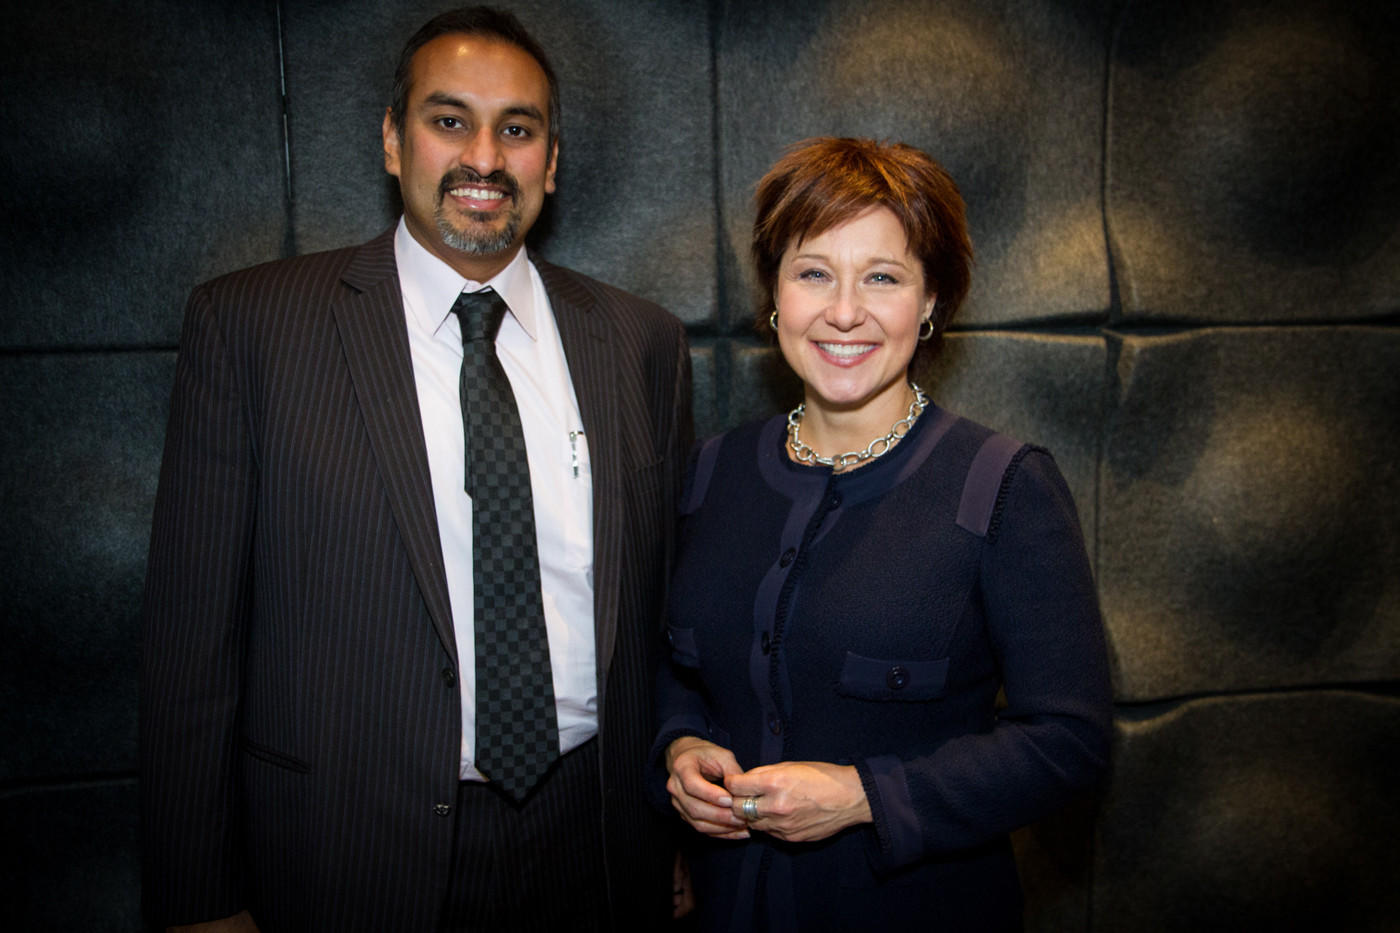 Namit Malhotra, chief executive and founder of Prime Focus World, stands alongside British Columbia Premier Christy Clark in the company's Los Angeles facility.